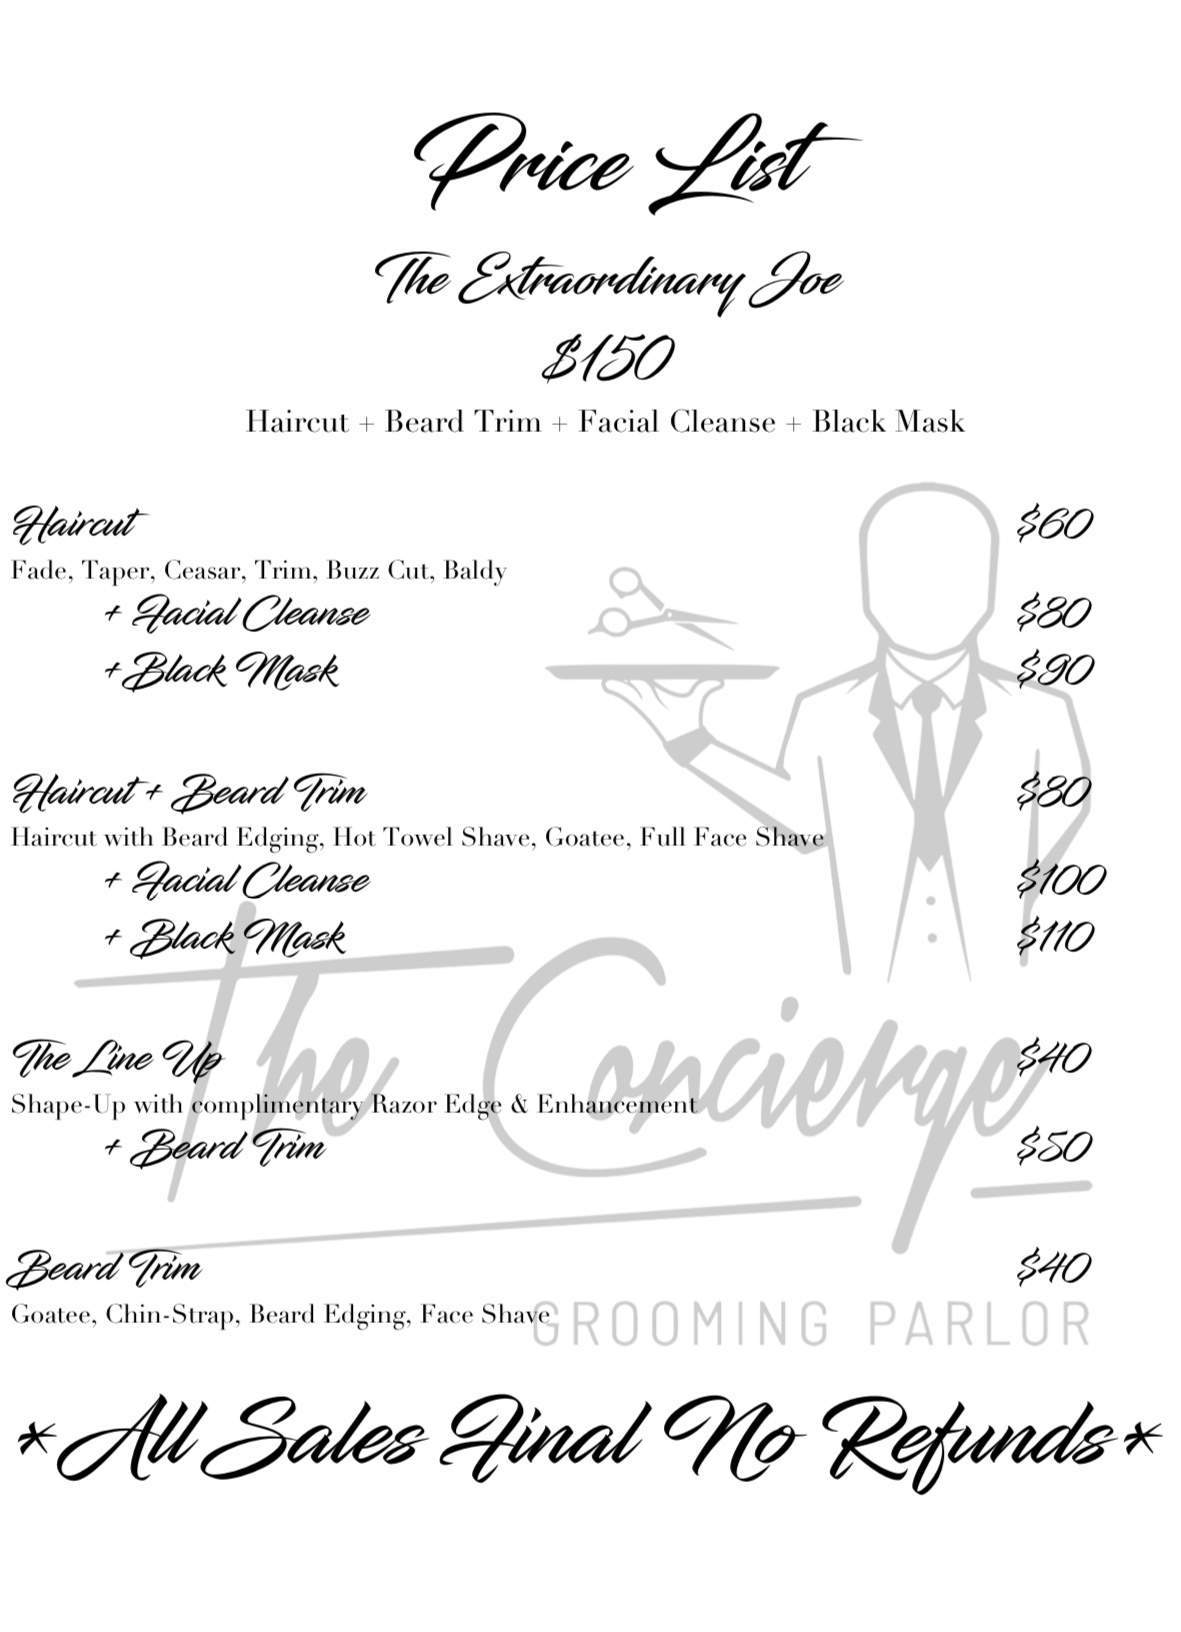 The concierge grooming parlor - prices